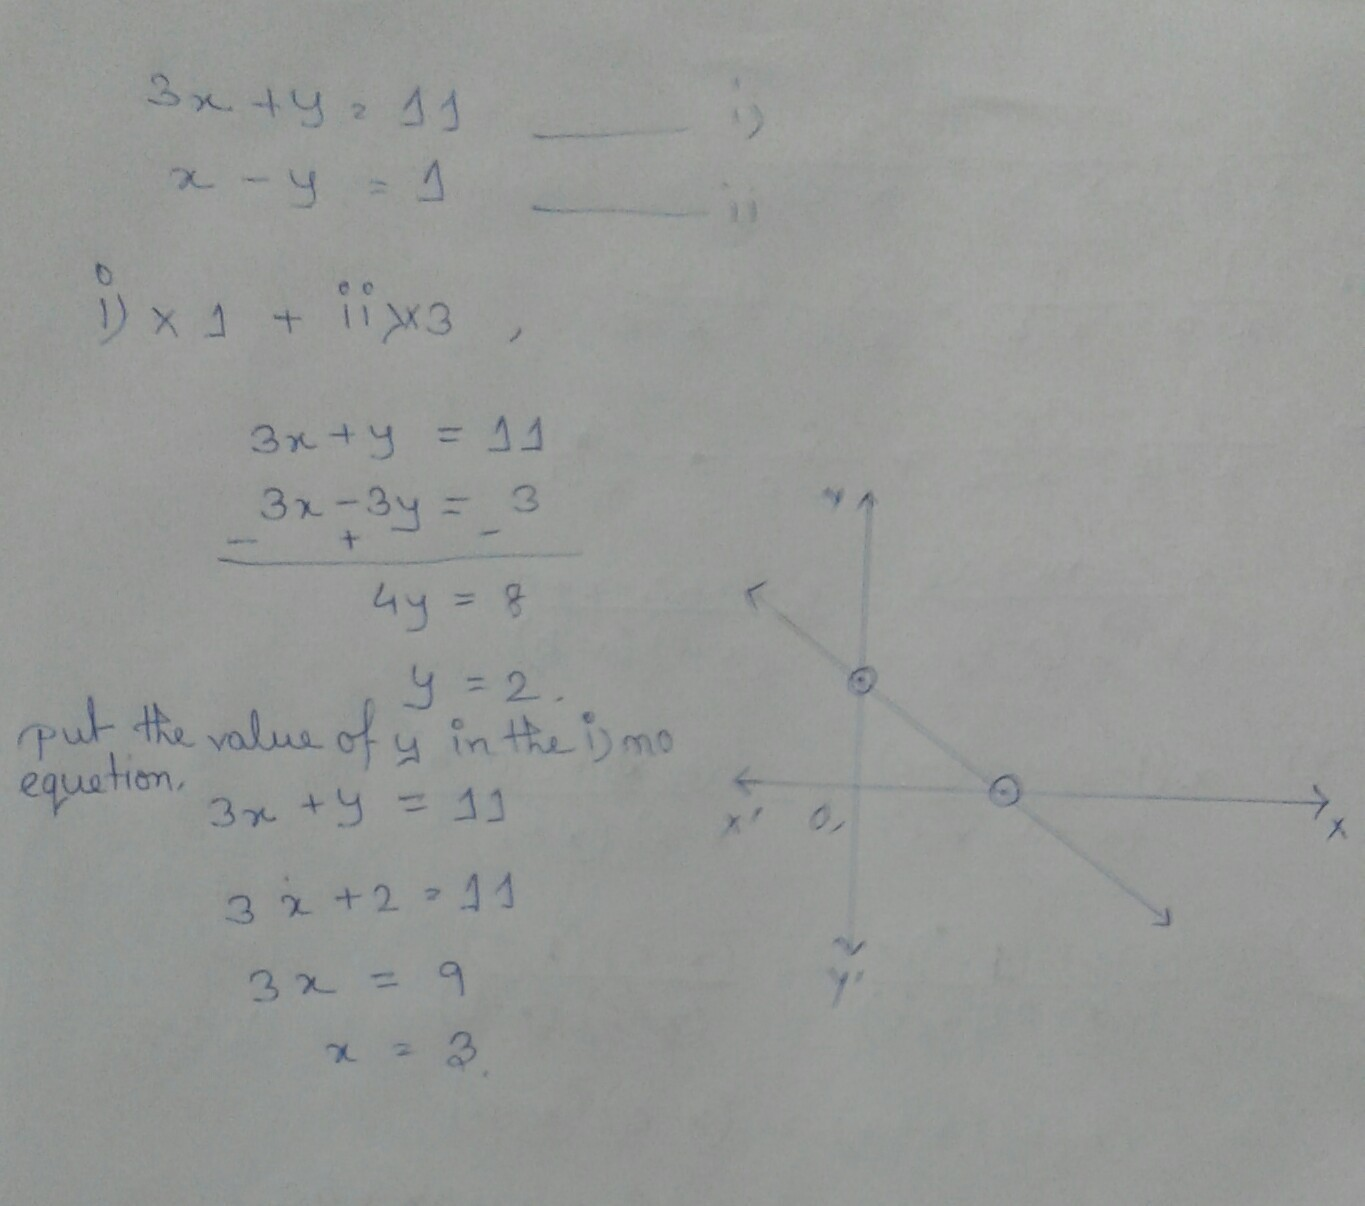 solve the following system of linear equation graphically: 3x+y-11 ...